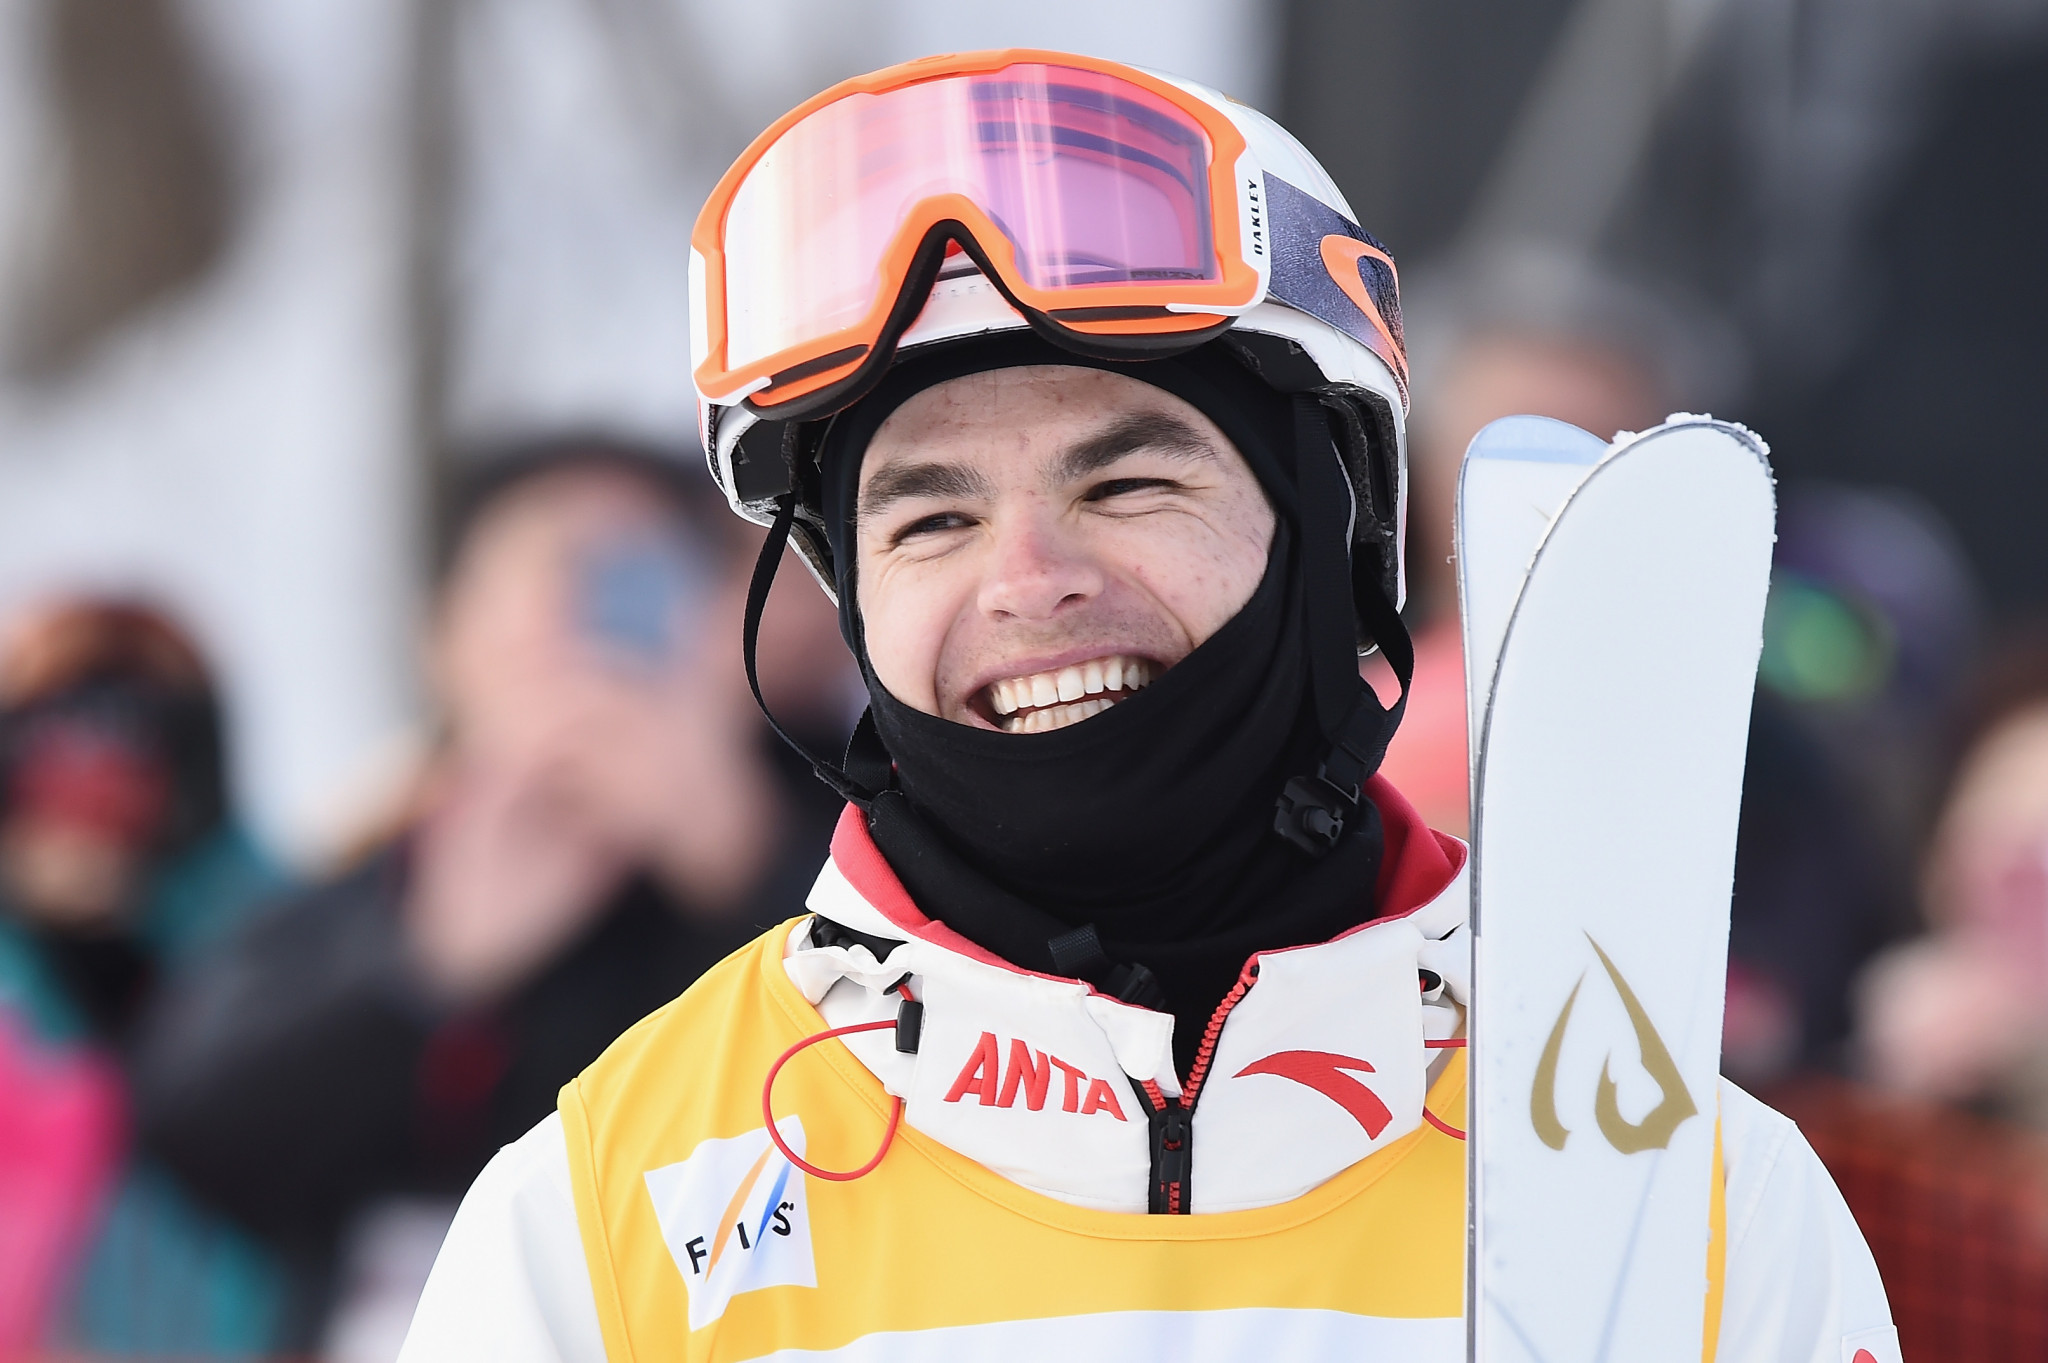 Mikaël Kingsbury of Canada is set to record his 100th FIS Freestyle Ski World Cup appearance ©Getty Images